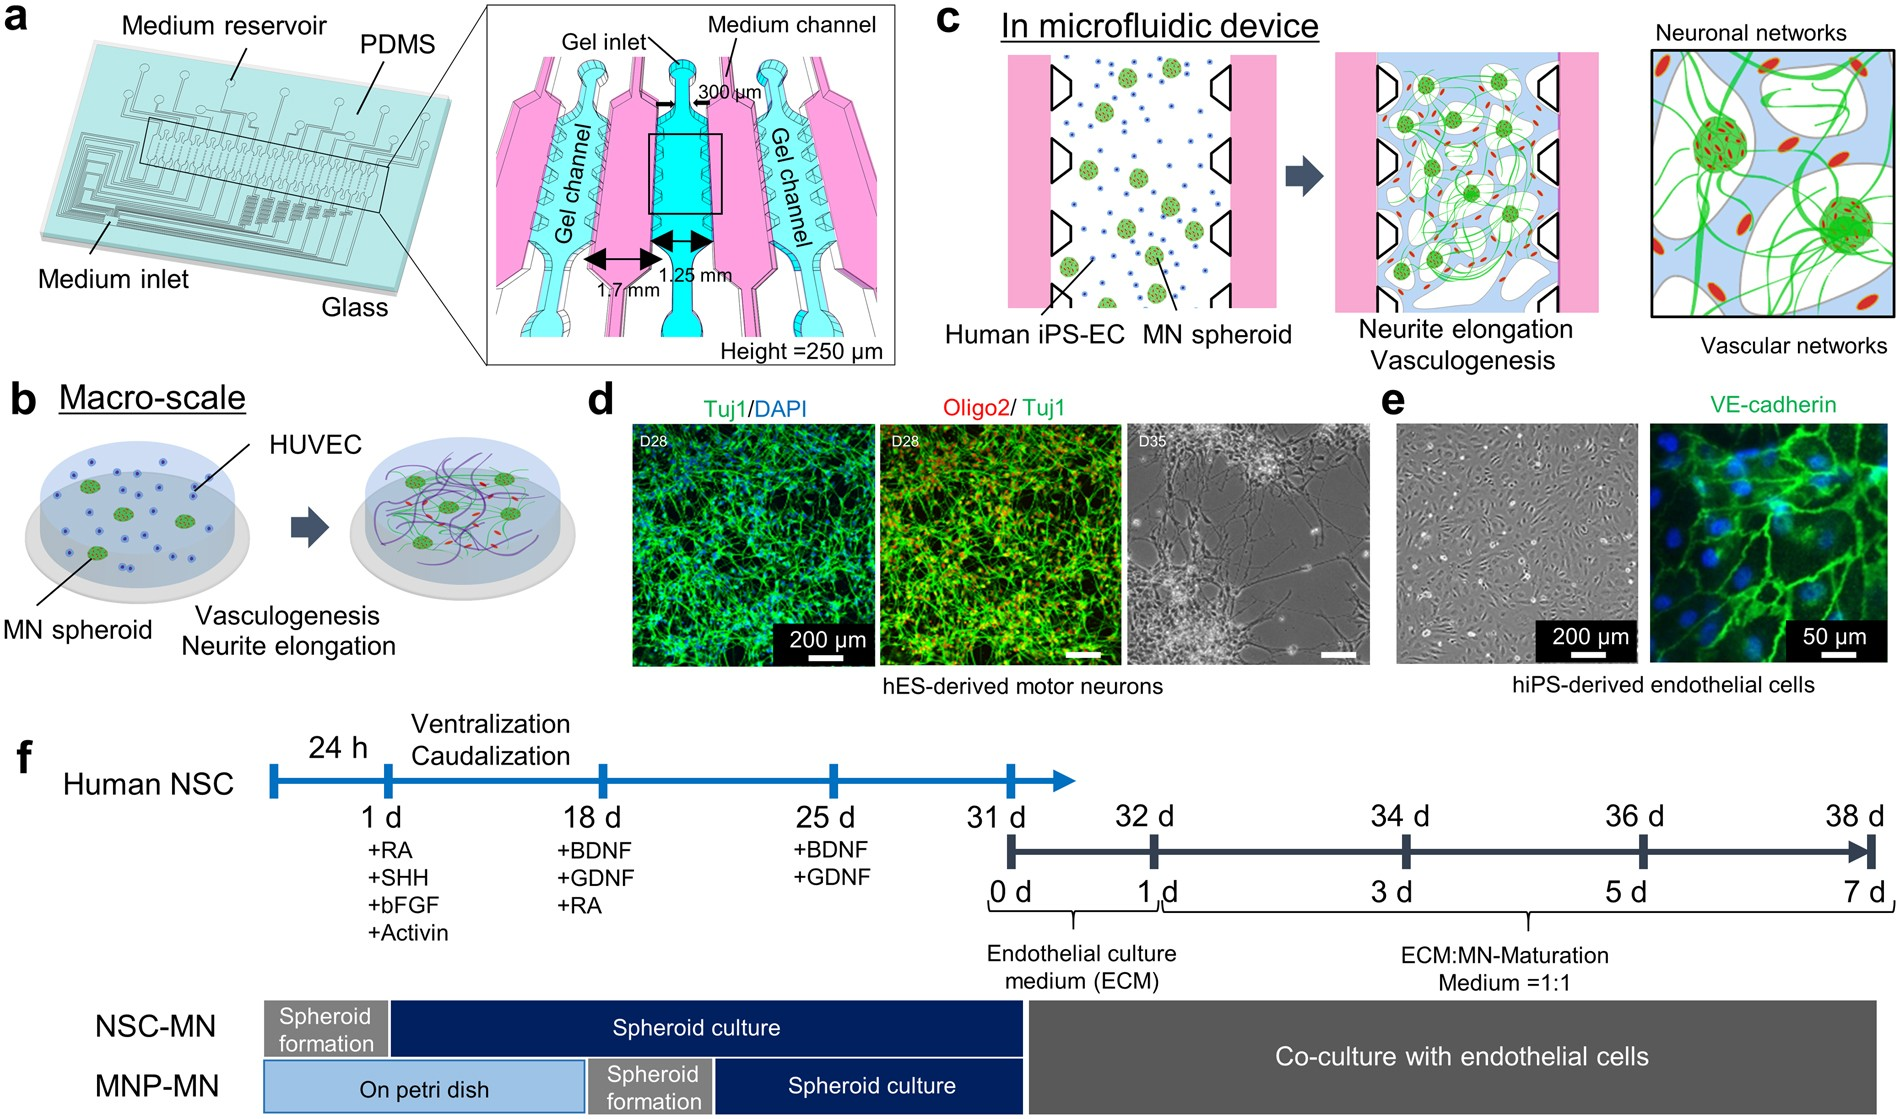 Engineered 3D vascular and neuronal networks in a